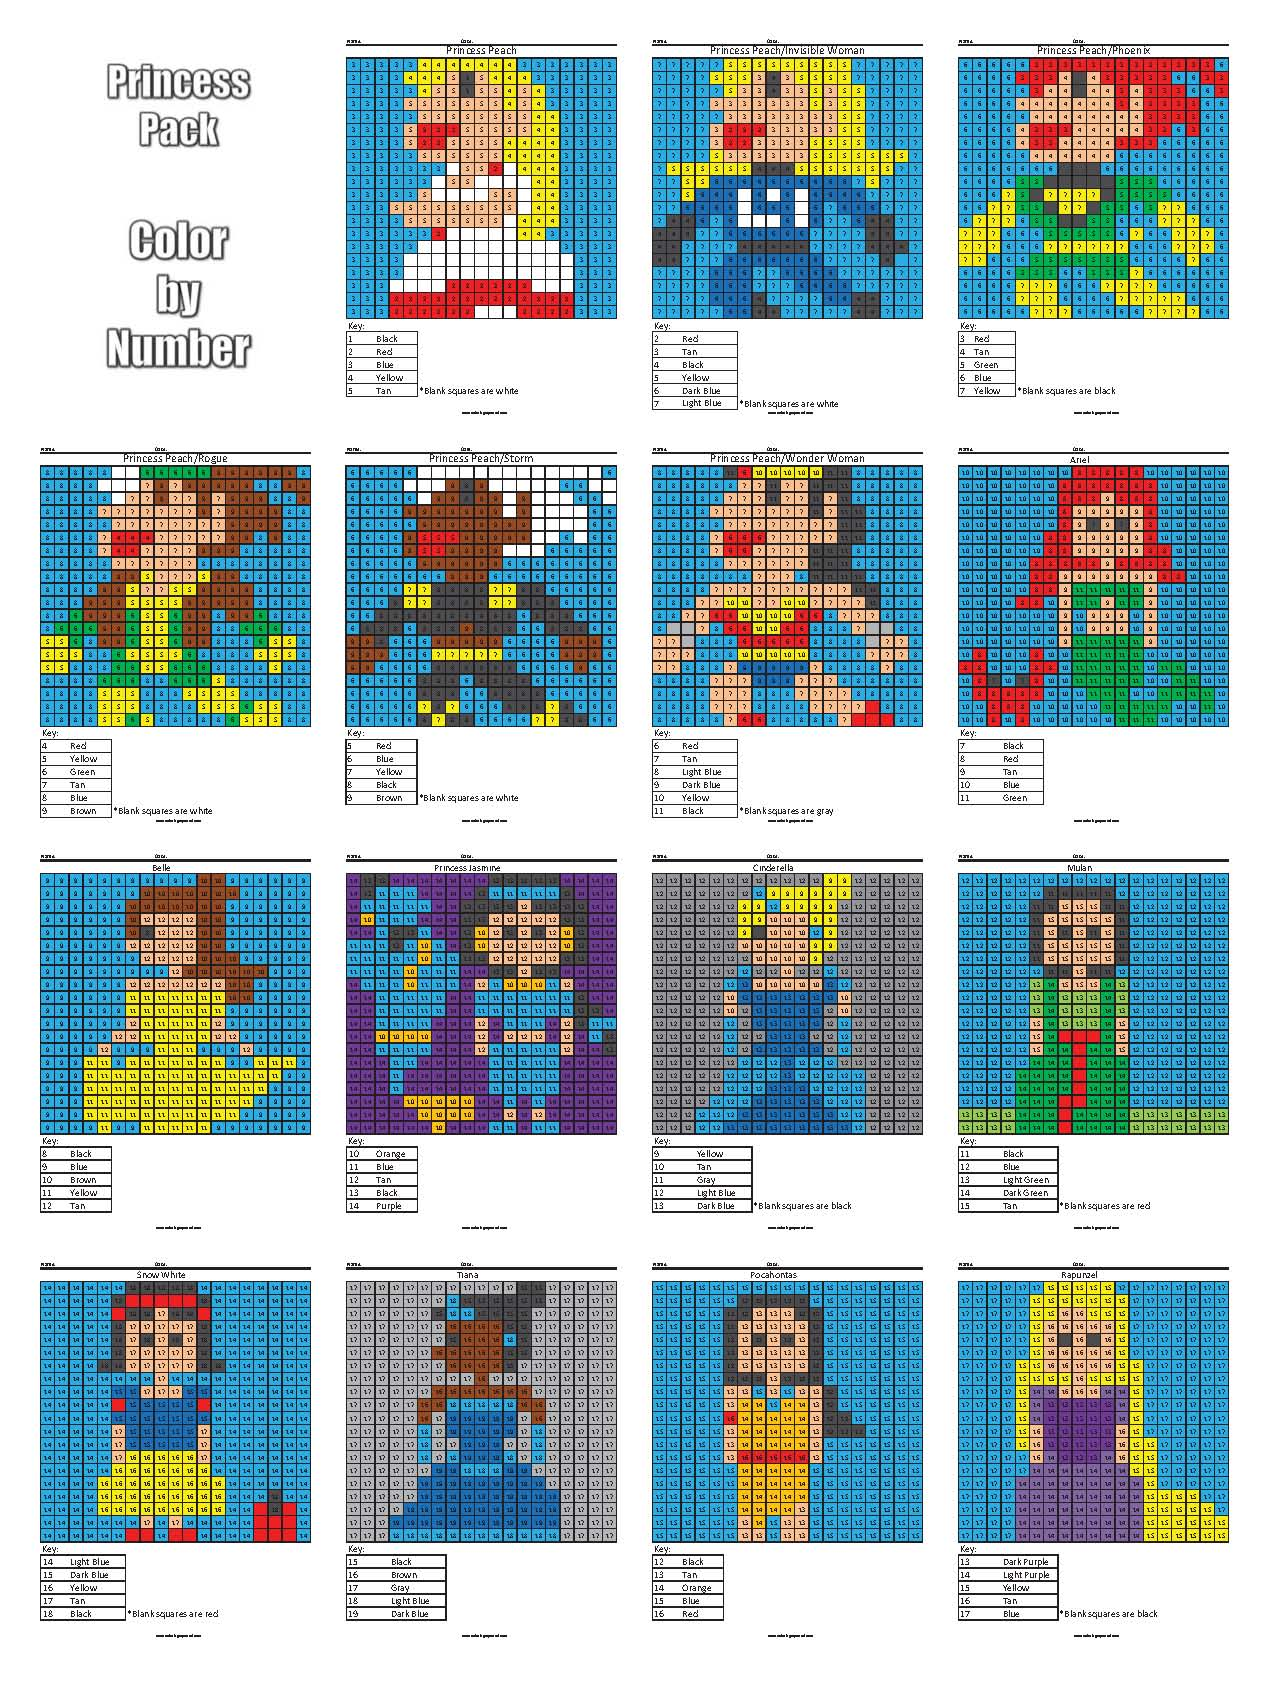 Disney Princess Color by Number Coloring Squared